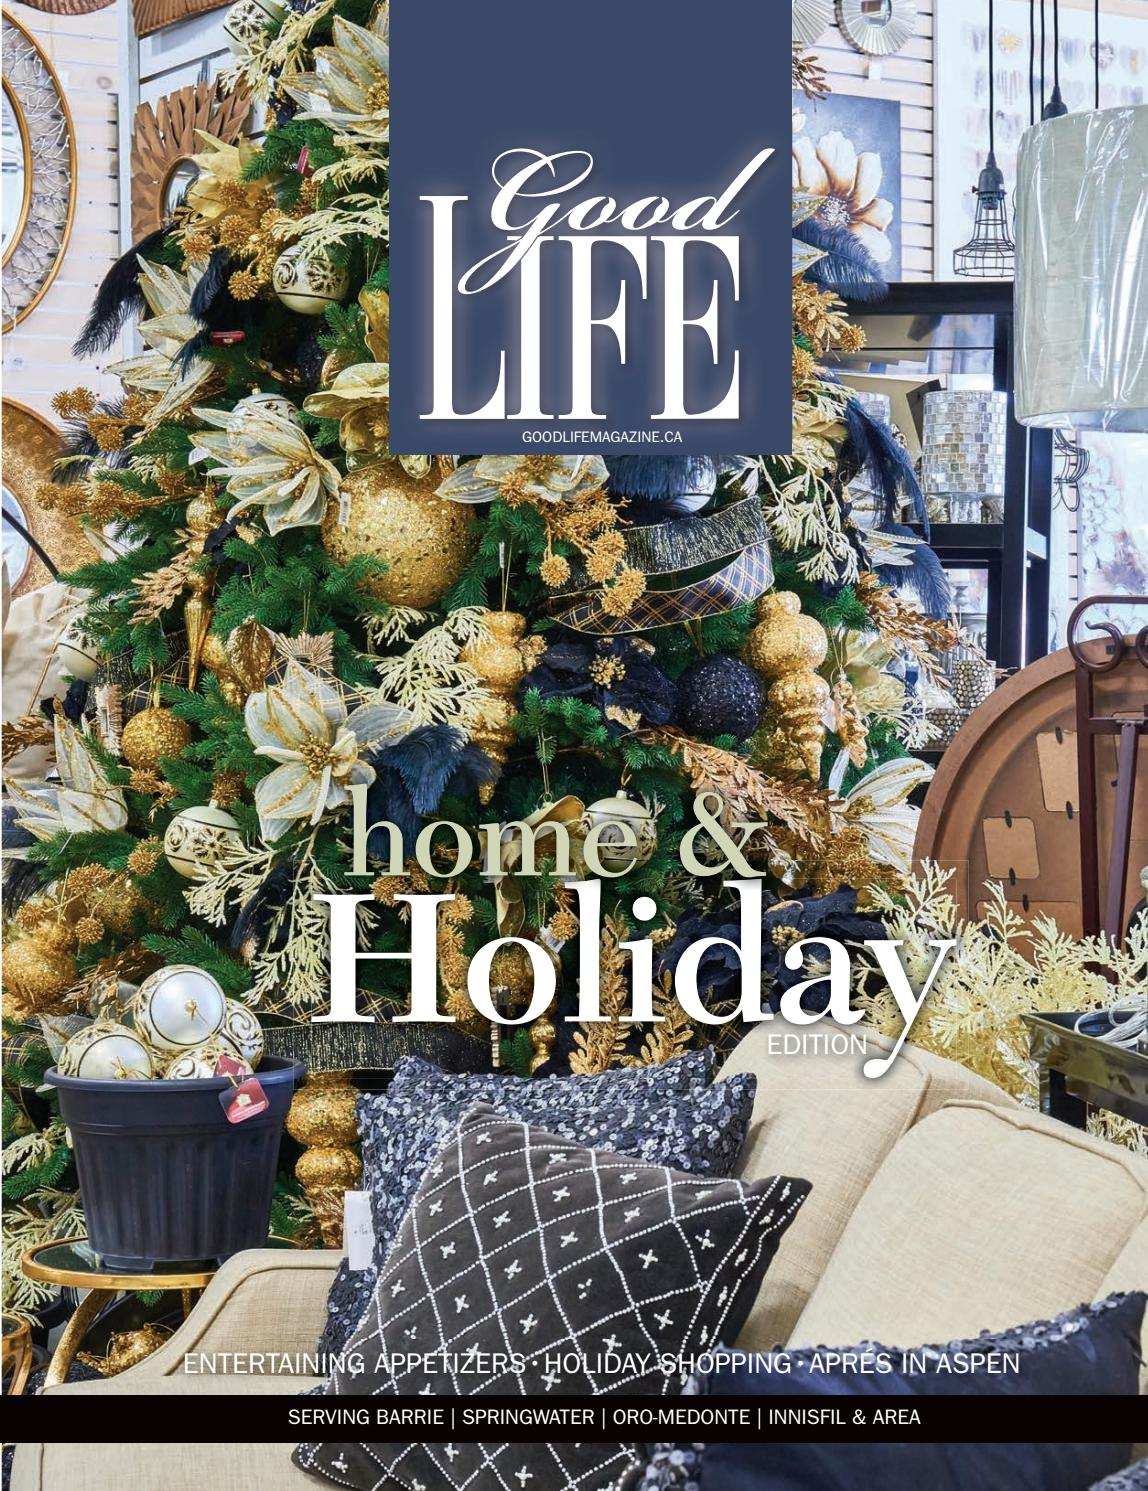 Goodlife barrie november/december   holiday edition 2016 by ...